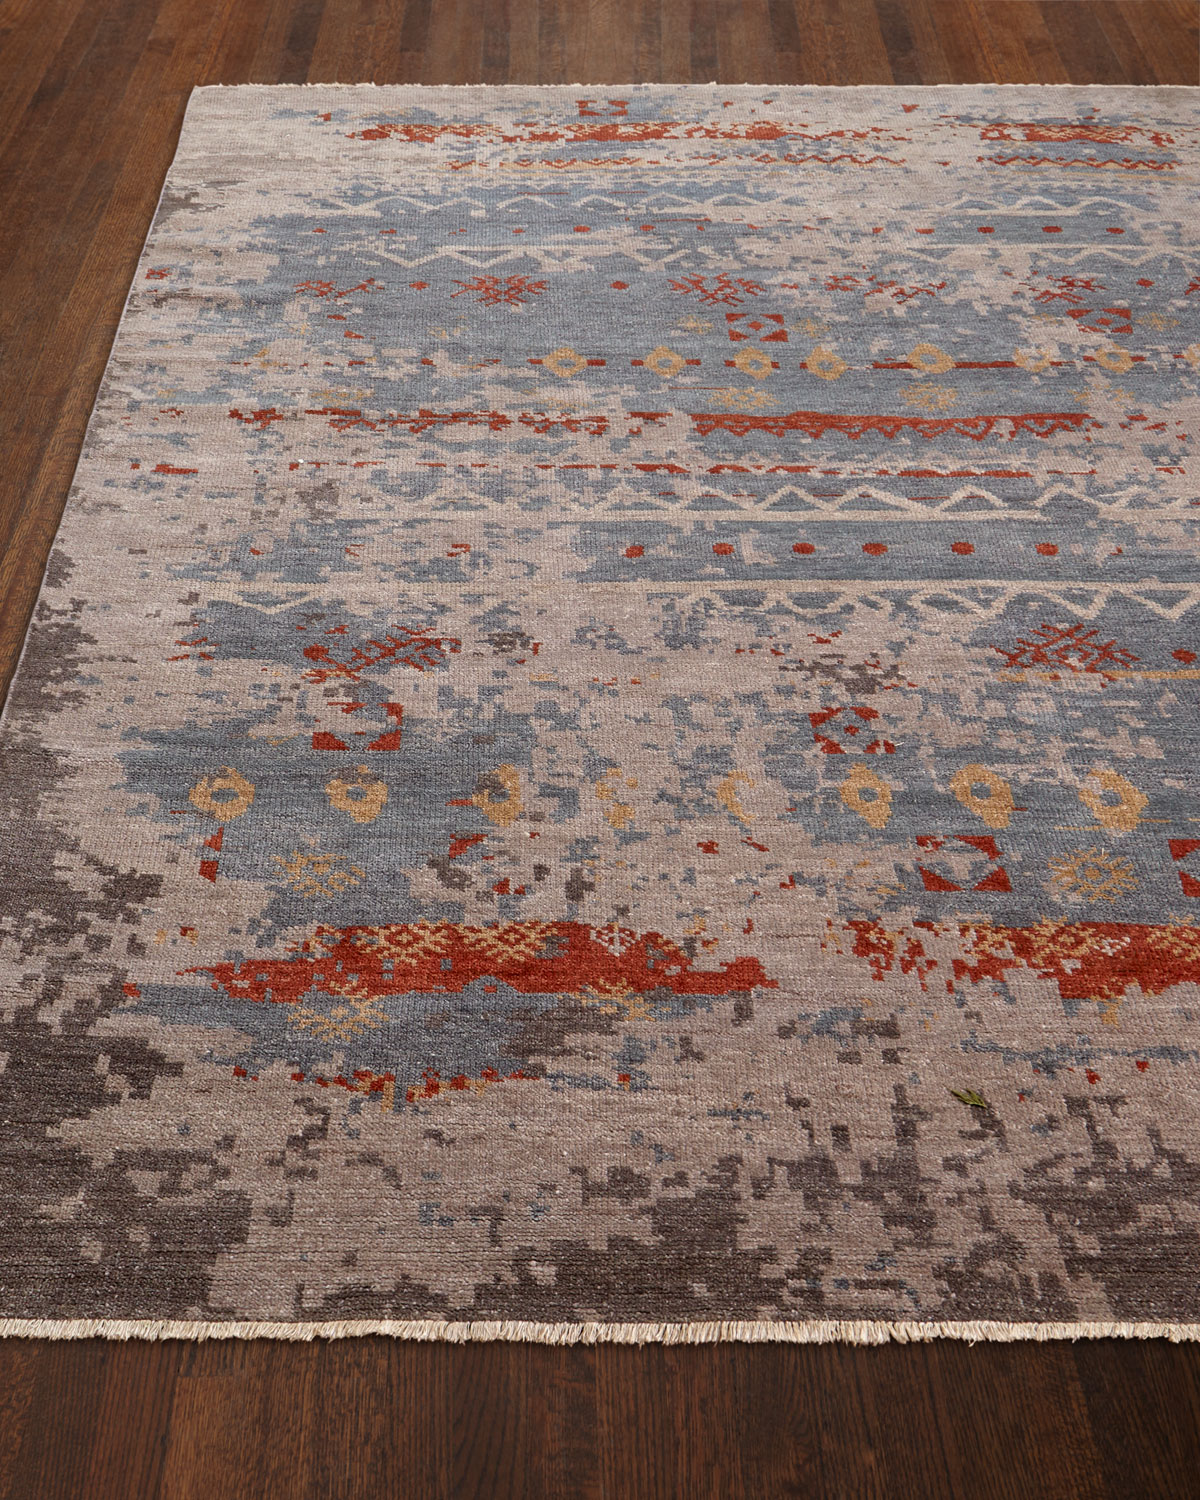 Daisa Clay Hand-Knotted Rug, 10' x 14'